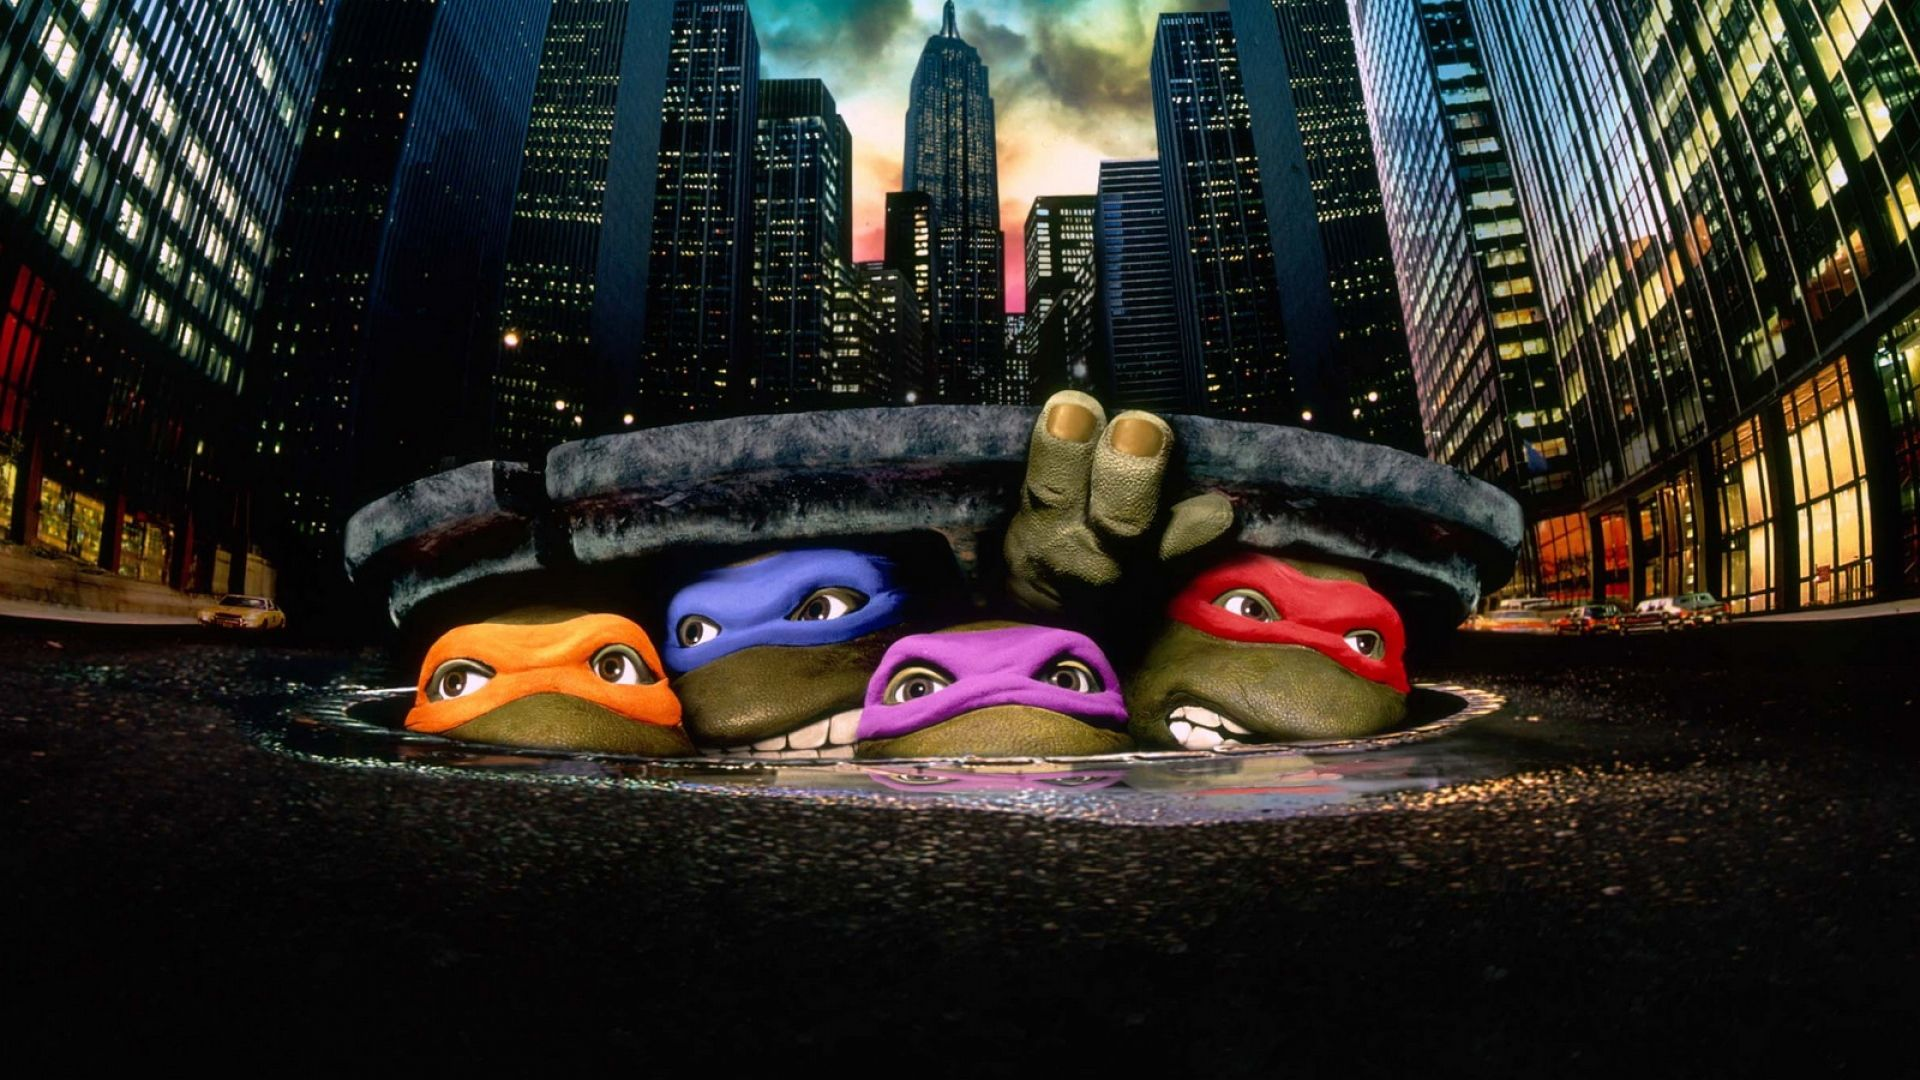 Full Hd 1080p Teenage Mutant Ninja Turtles Wallpapers Hd Desktop